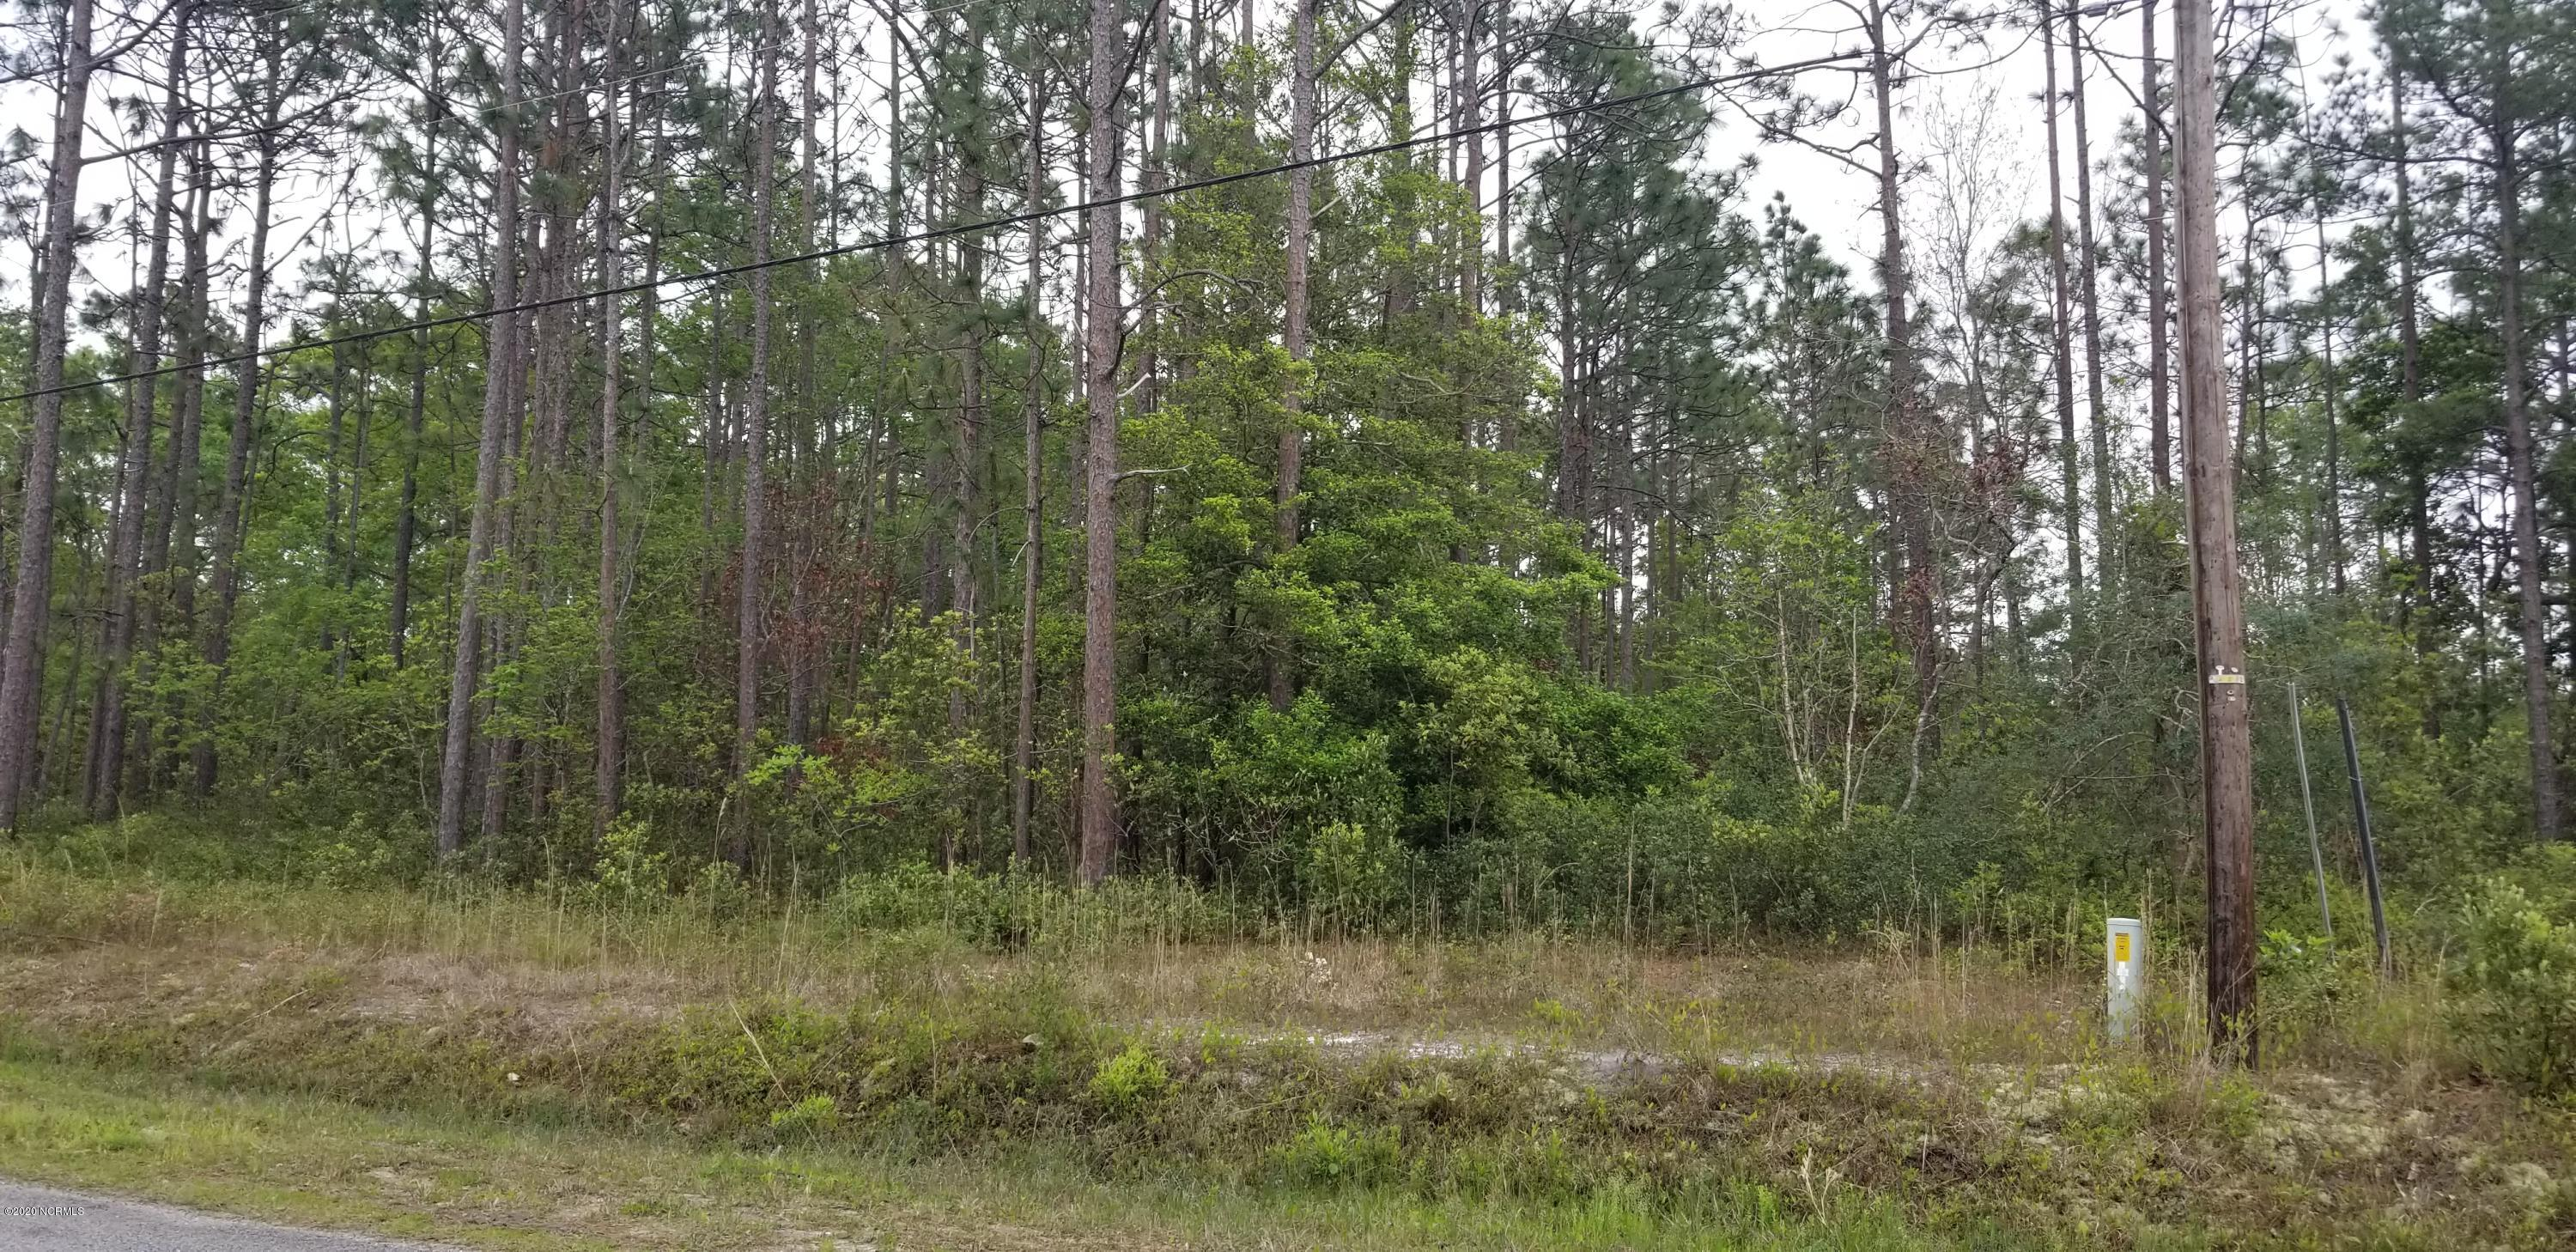 Lot 7 Charlestown Road, Southport, North Carolina 28461, ,Residential land,For sale,Charlestown,100217087